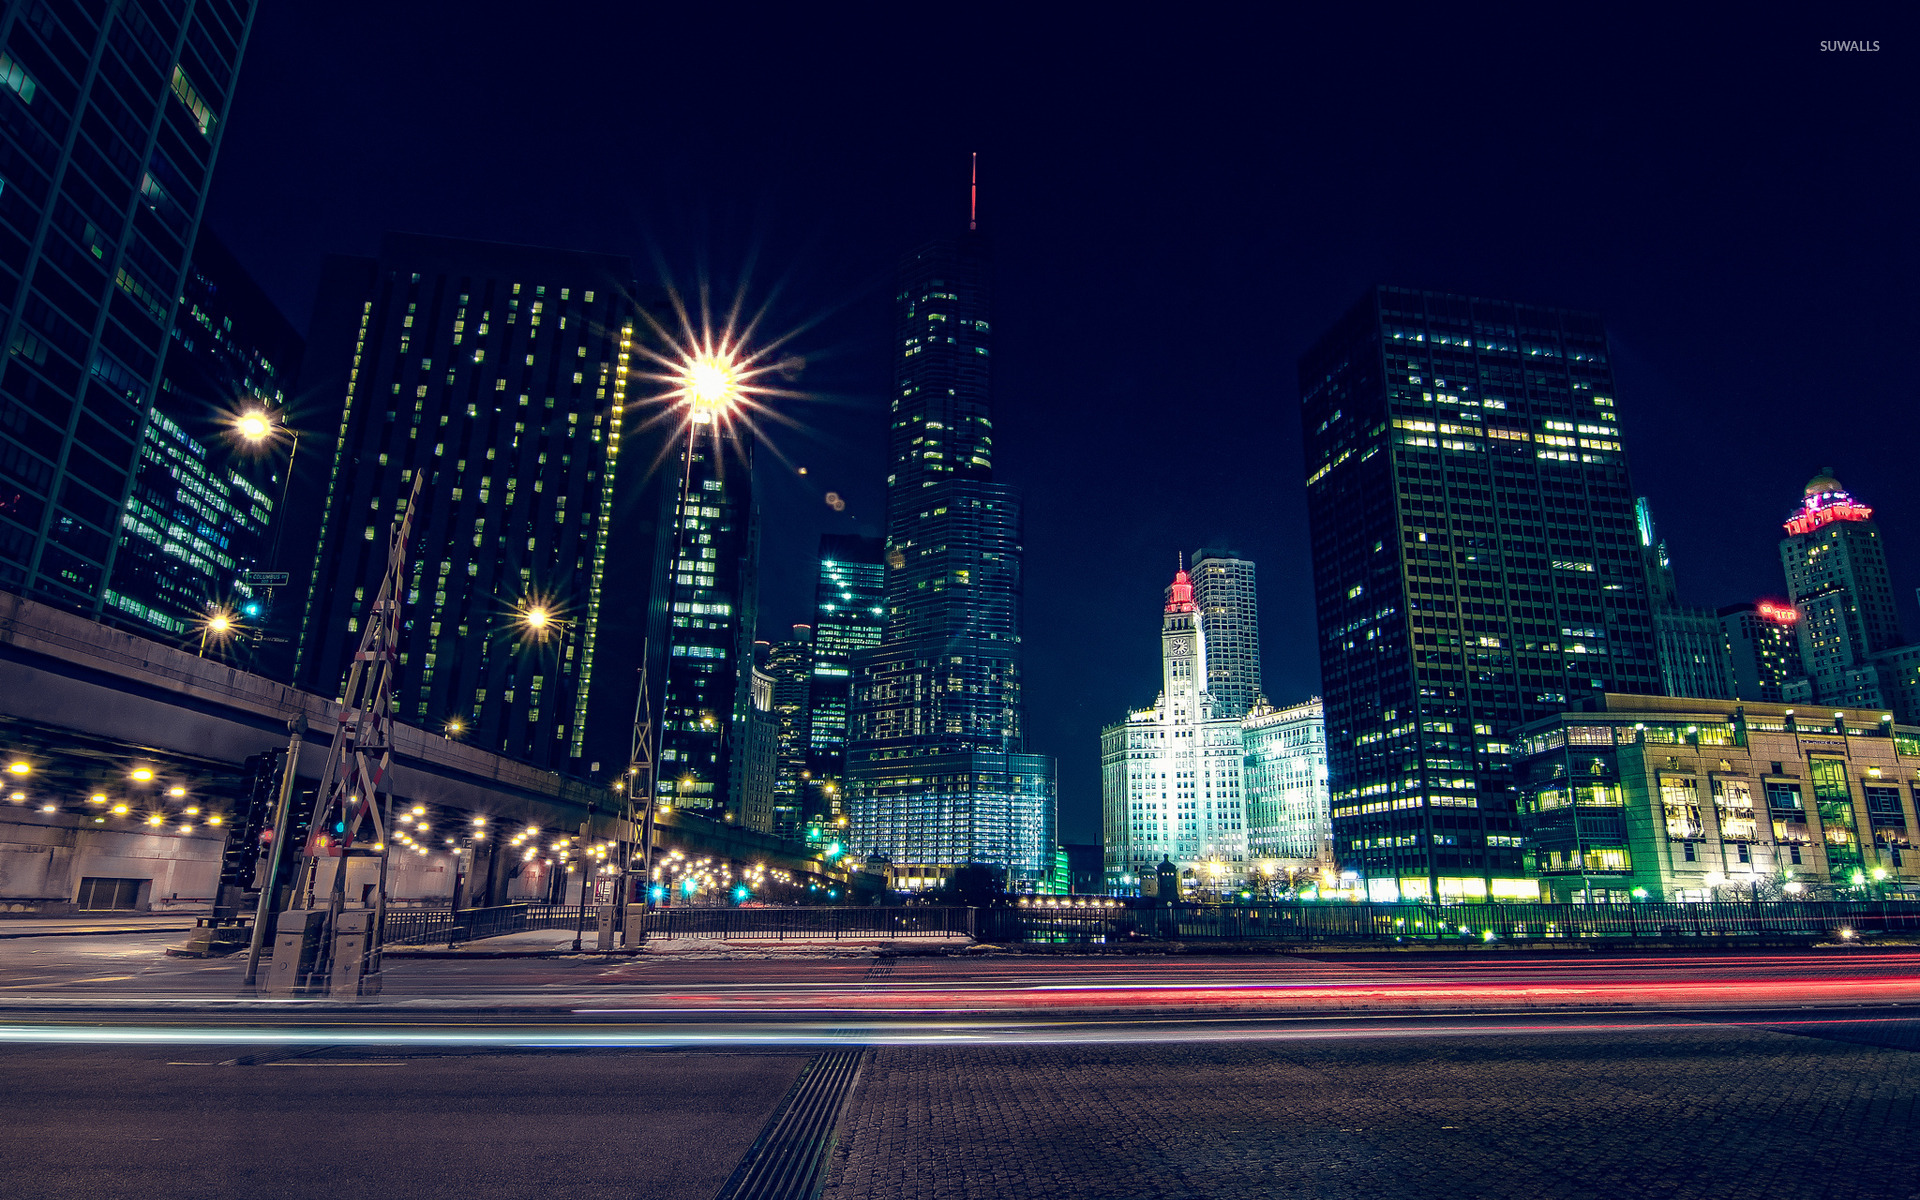 Top Wallpaper Night Chicago - chicago-at-night-26284-1920x1200  HD.jpg